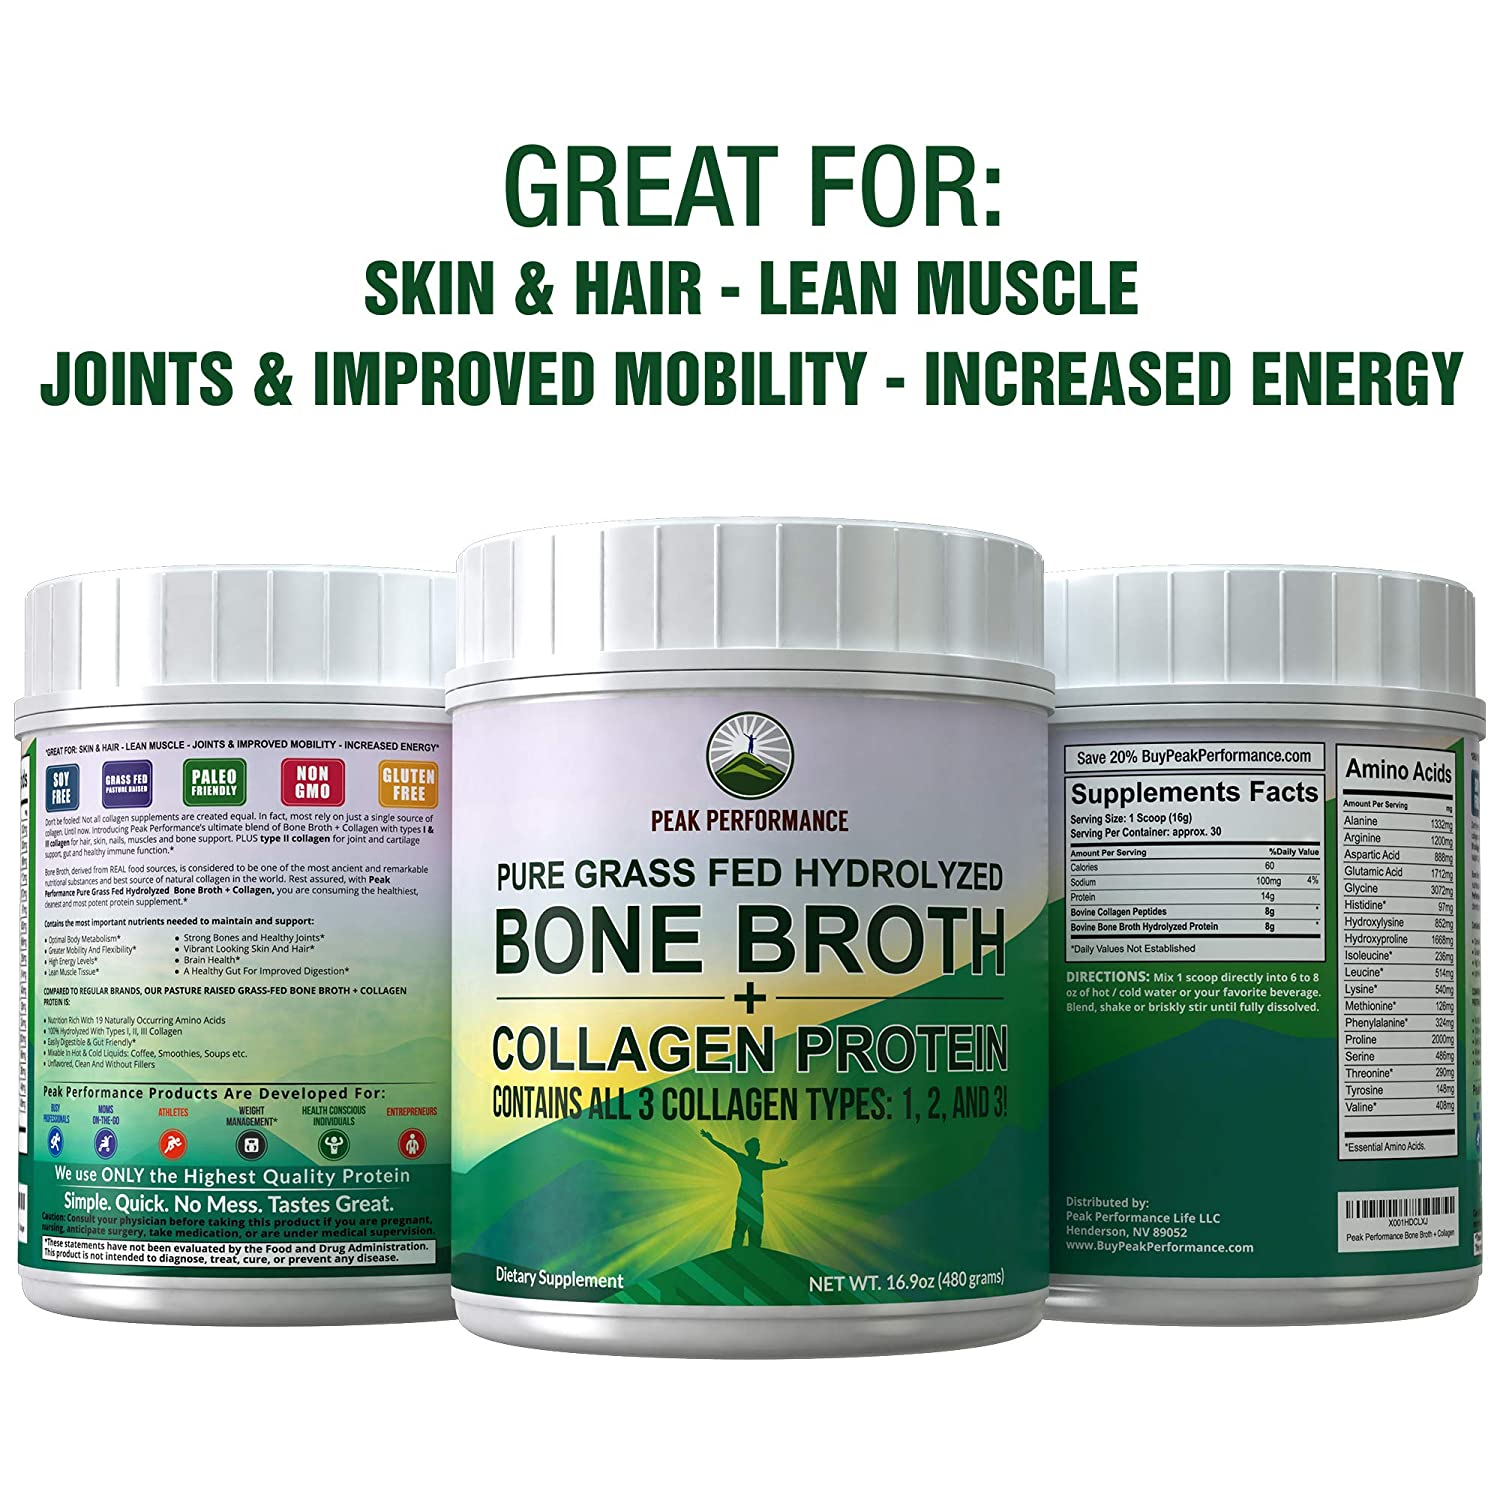 Hydrolyzed Bone Broth and Collagen Unflavored Protein Peptides Powder by Peak Performance. Contains All Collagen Types: 1, 2, and 3. Pure Pasture, ...